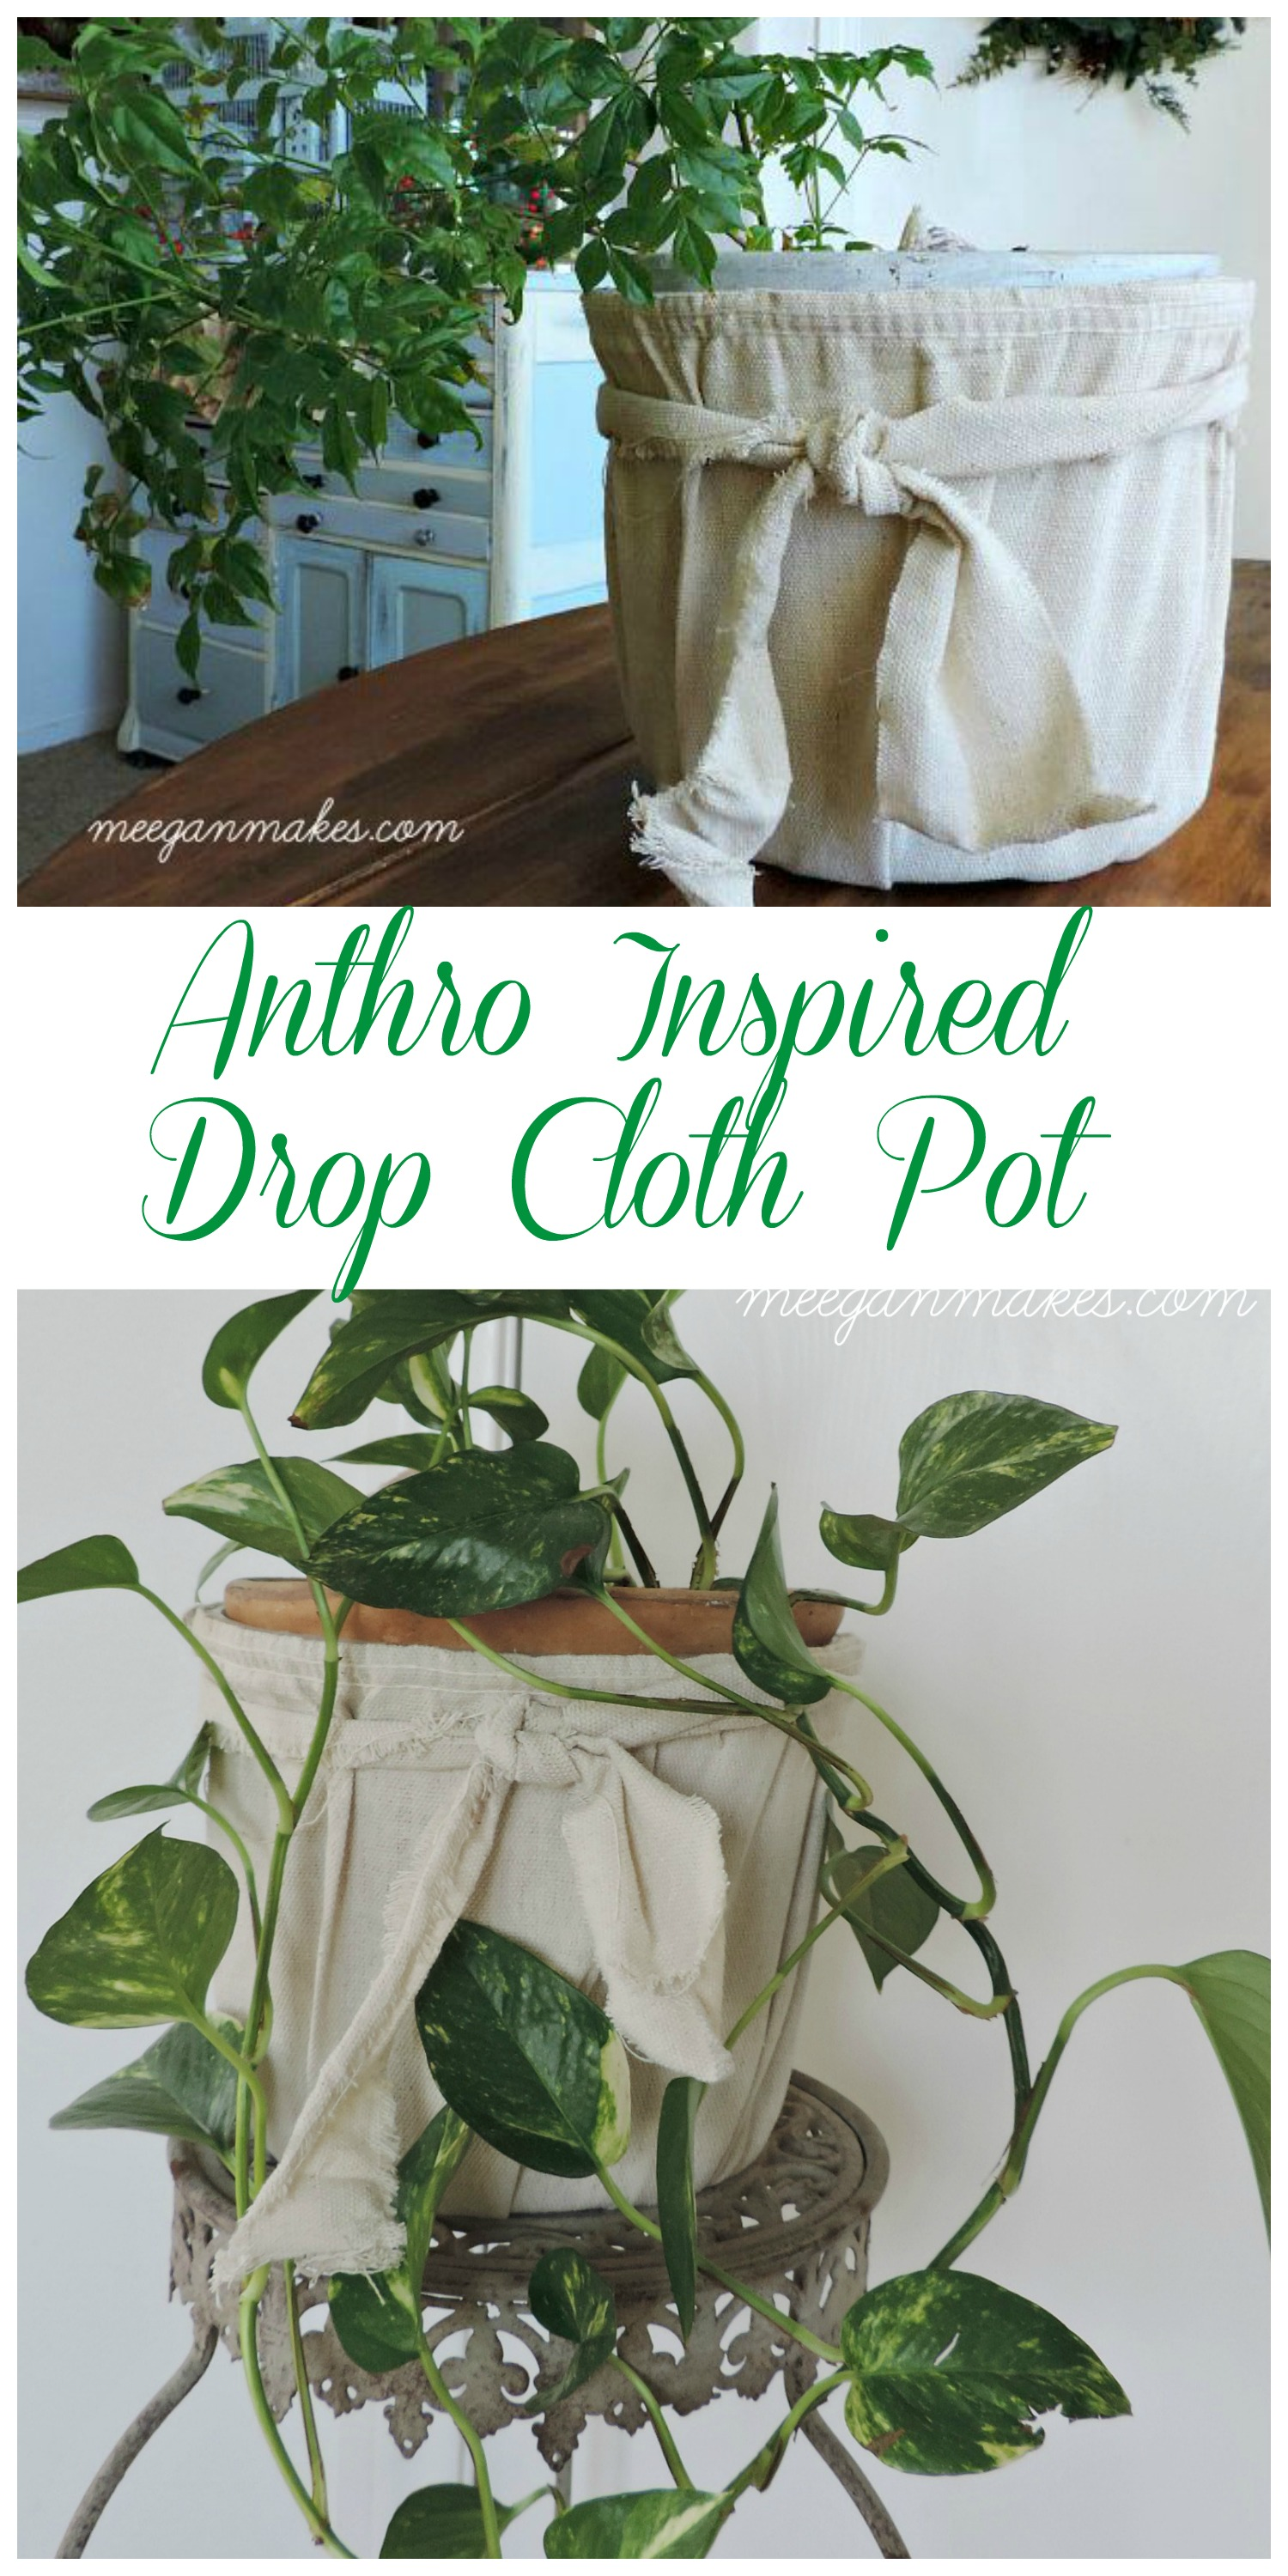 Anthro Inspired Drop Cloth Pot